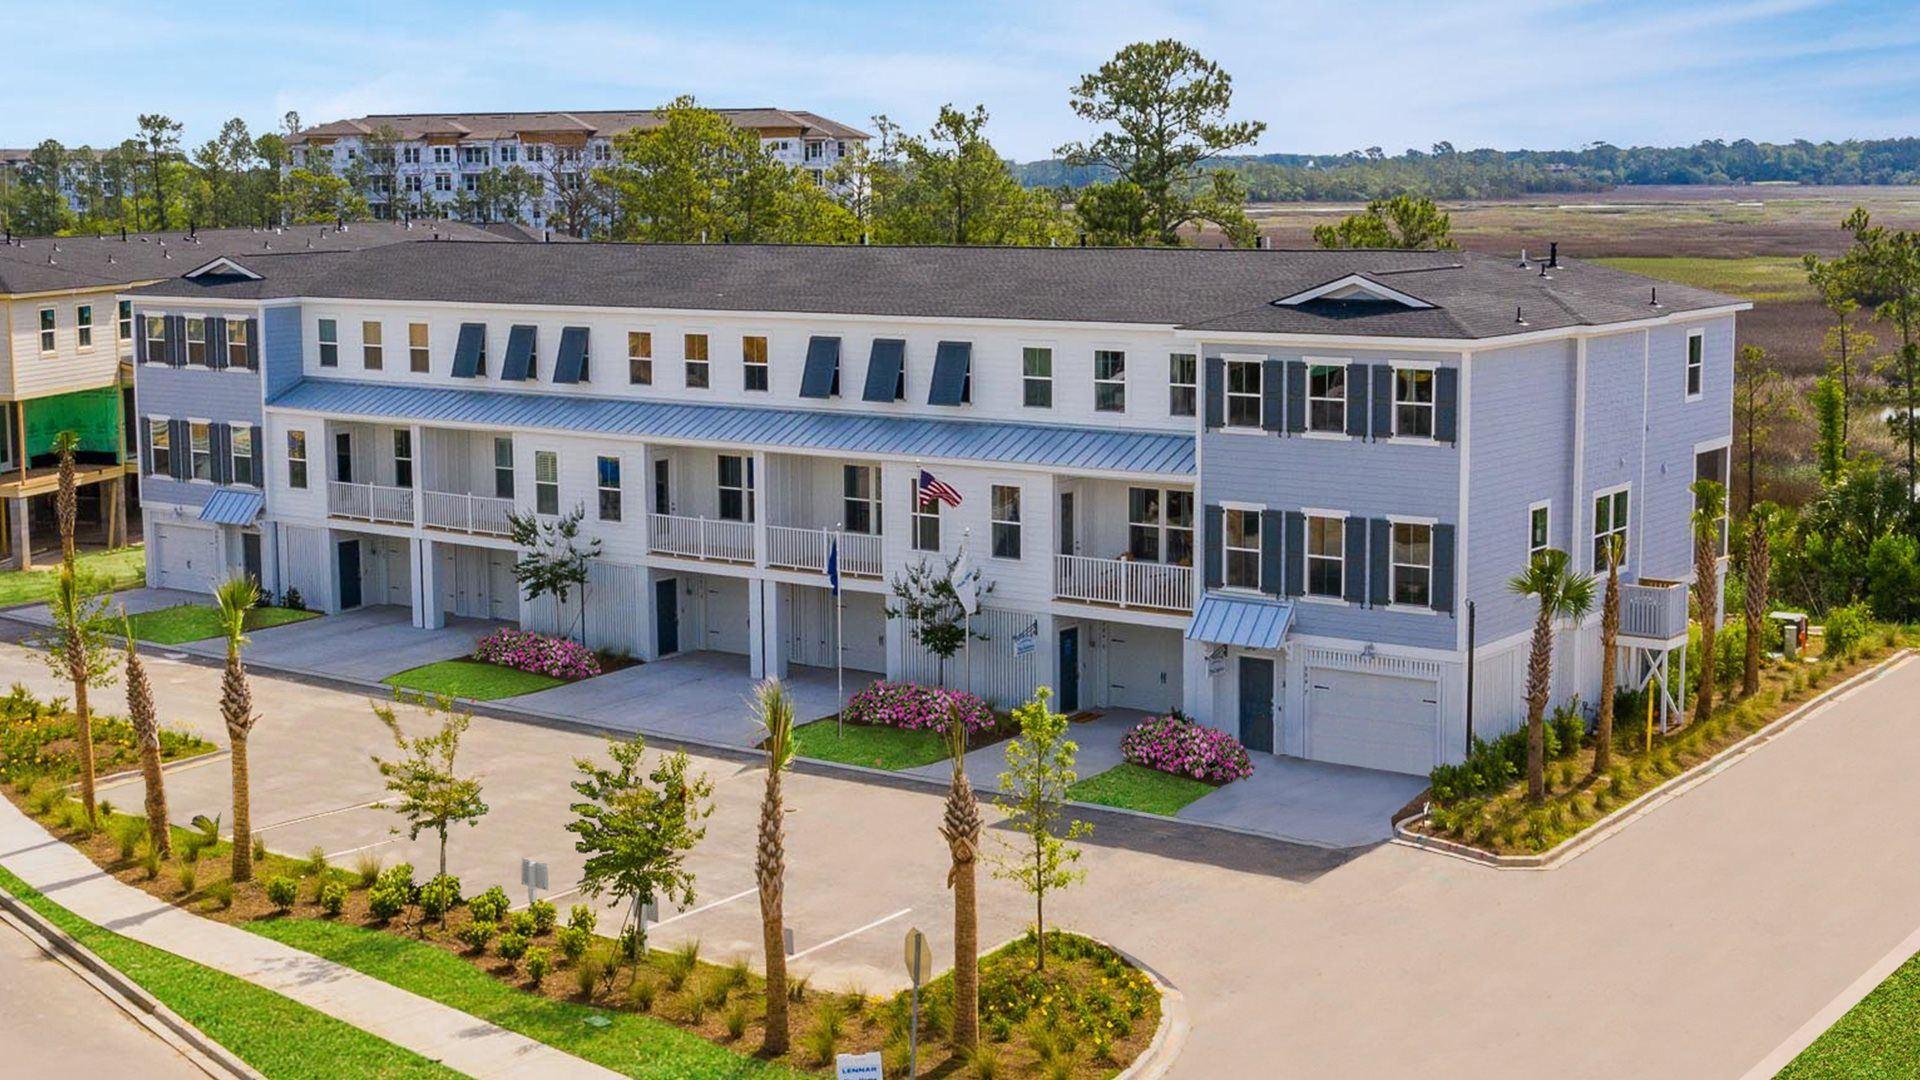 New Townhomes for Sale in Charleston